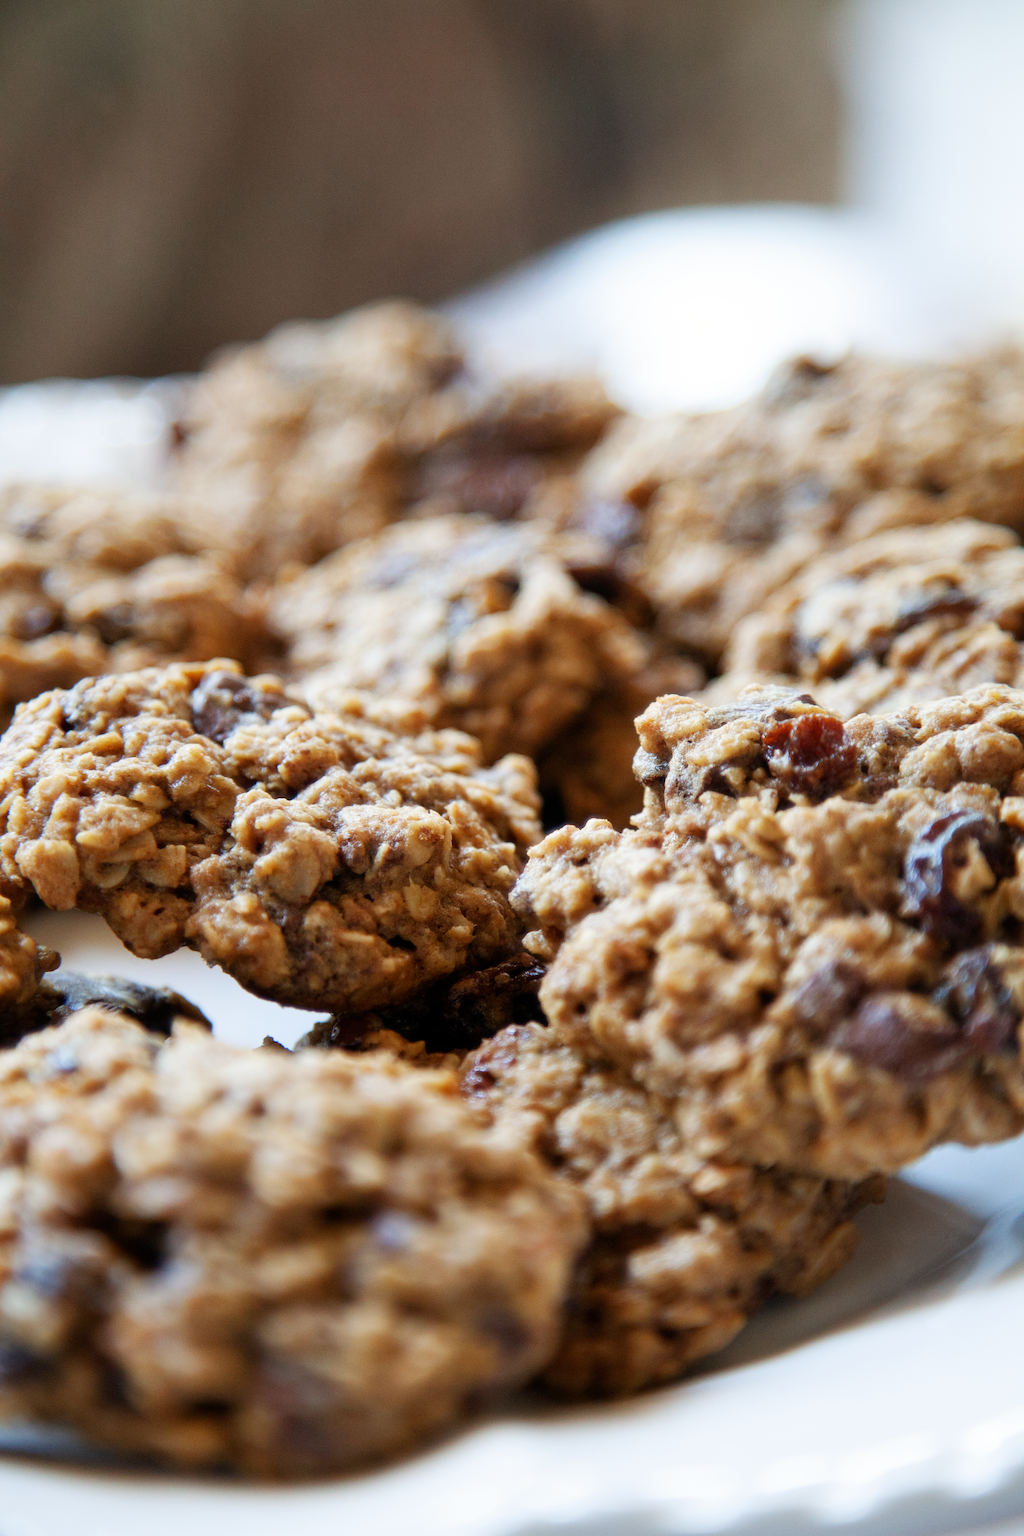 Chocolate Raisin Oatmeal Cookies - My Southern Sweet Tooth